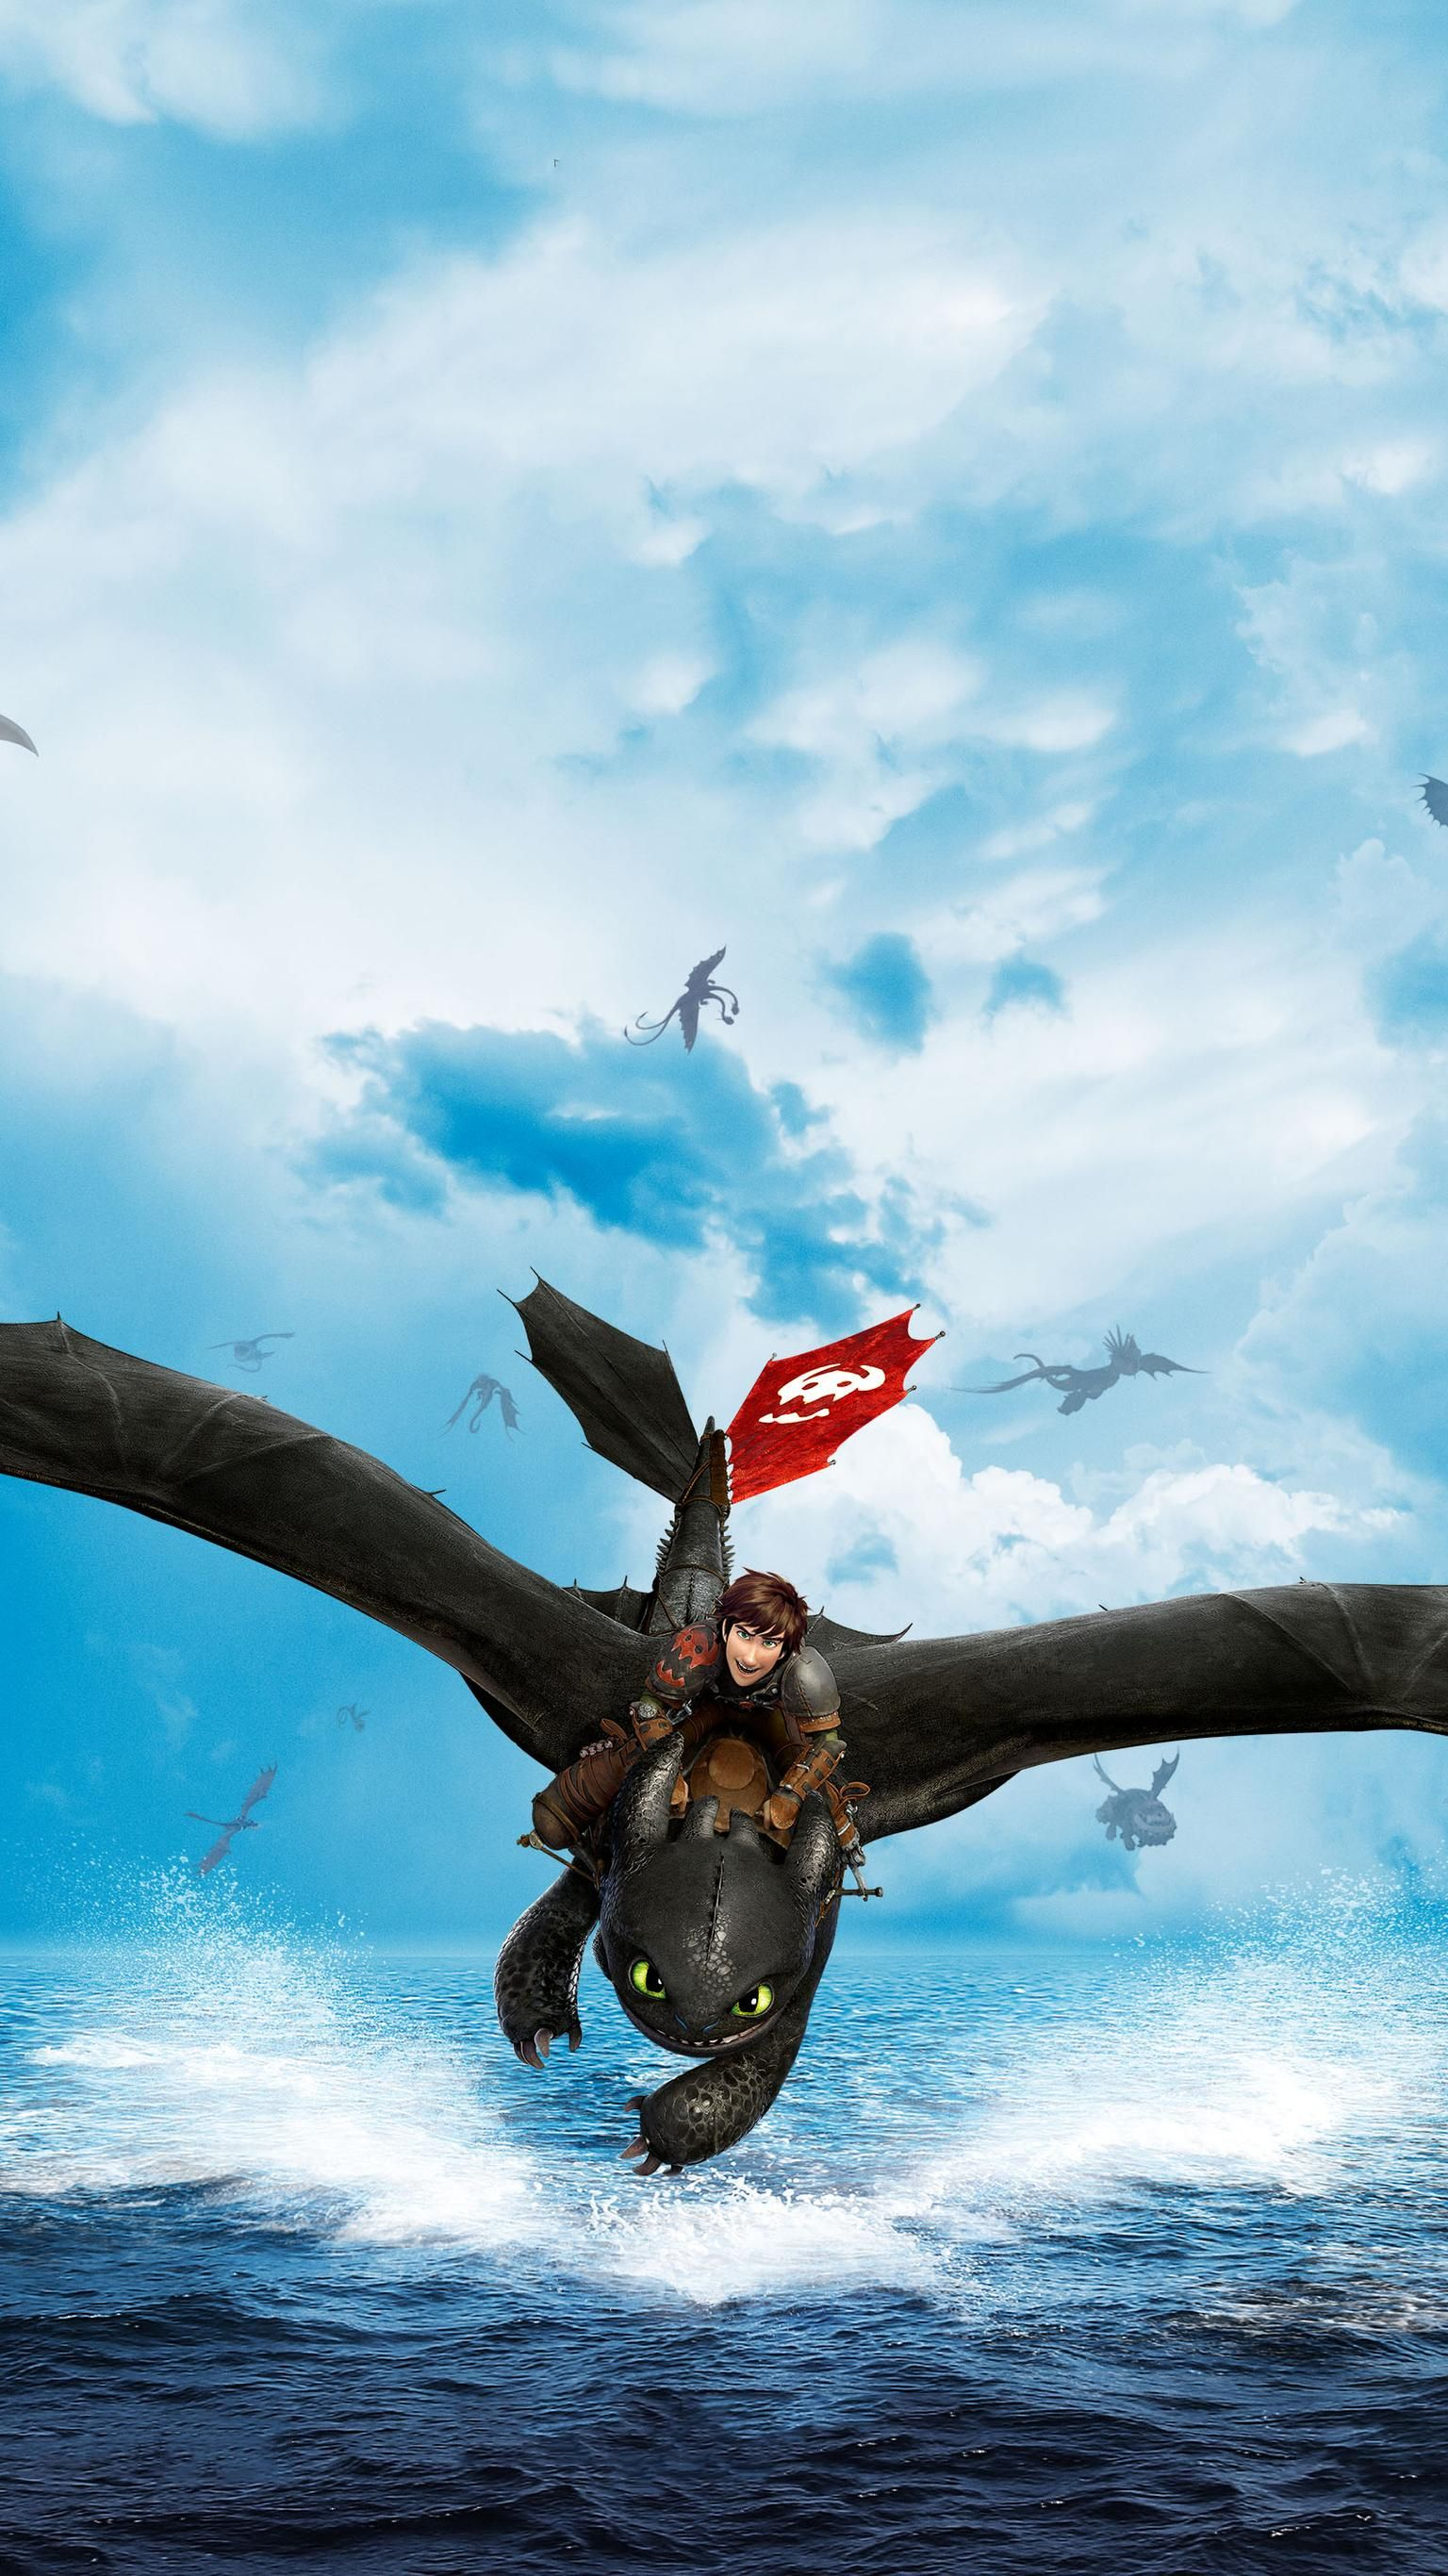 How To Train Your Dragon 2 2014 Phone Wallpaper In 2020 How